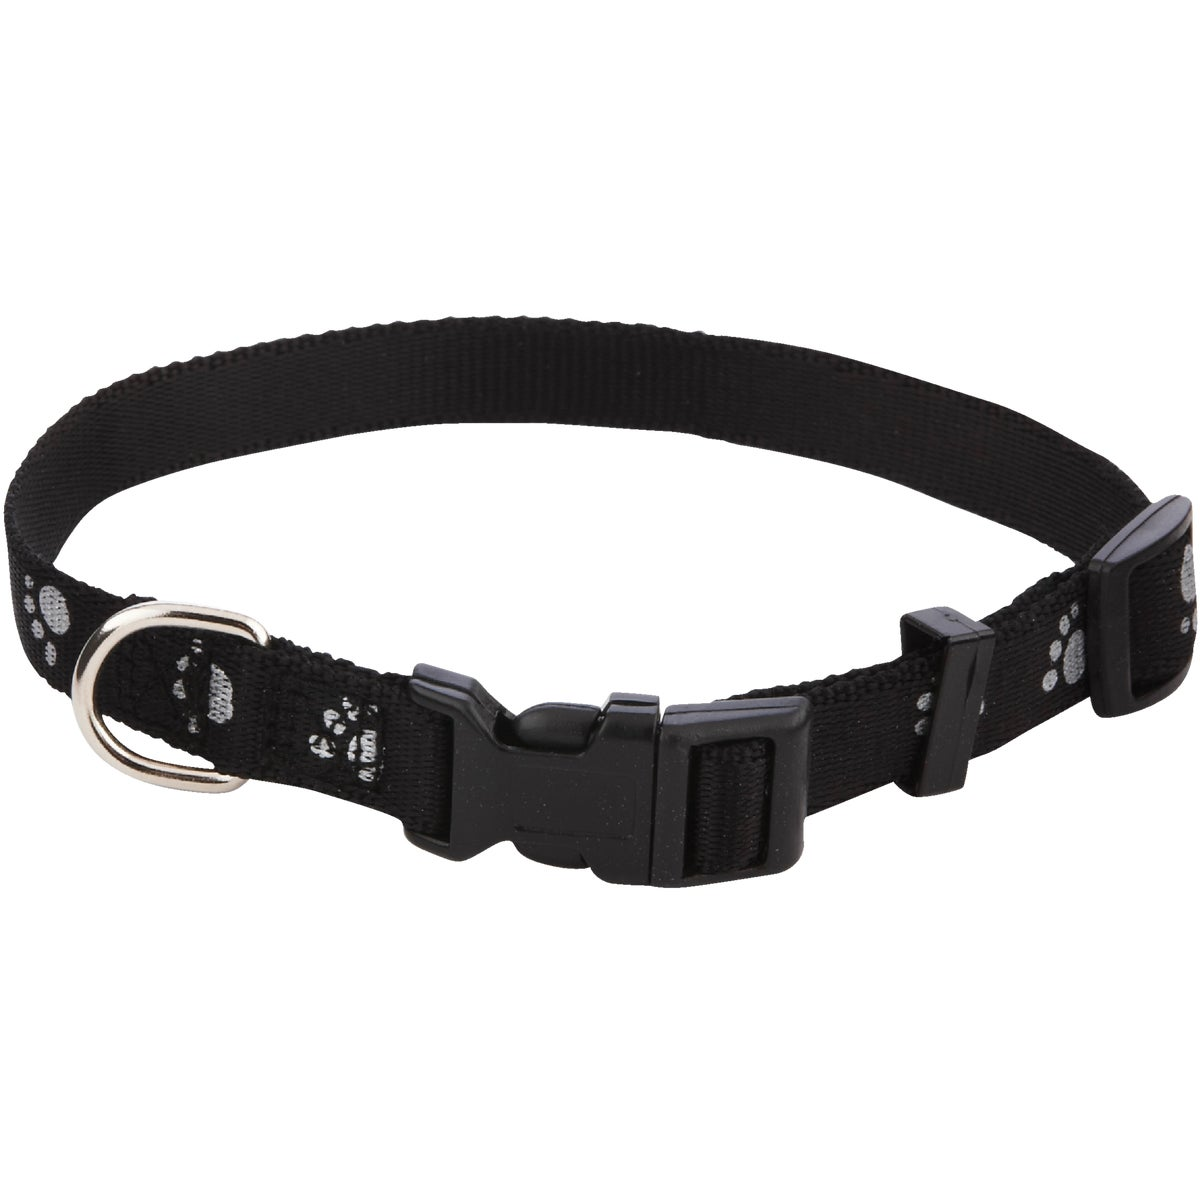 5/8X10-16PAW REFL COLLAR - 39241 by Westminster Pet